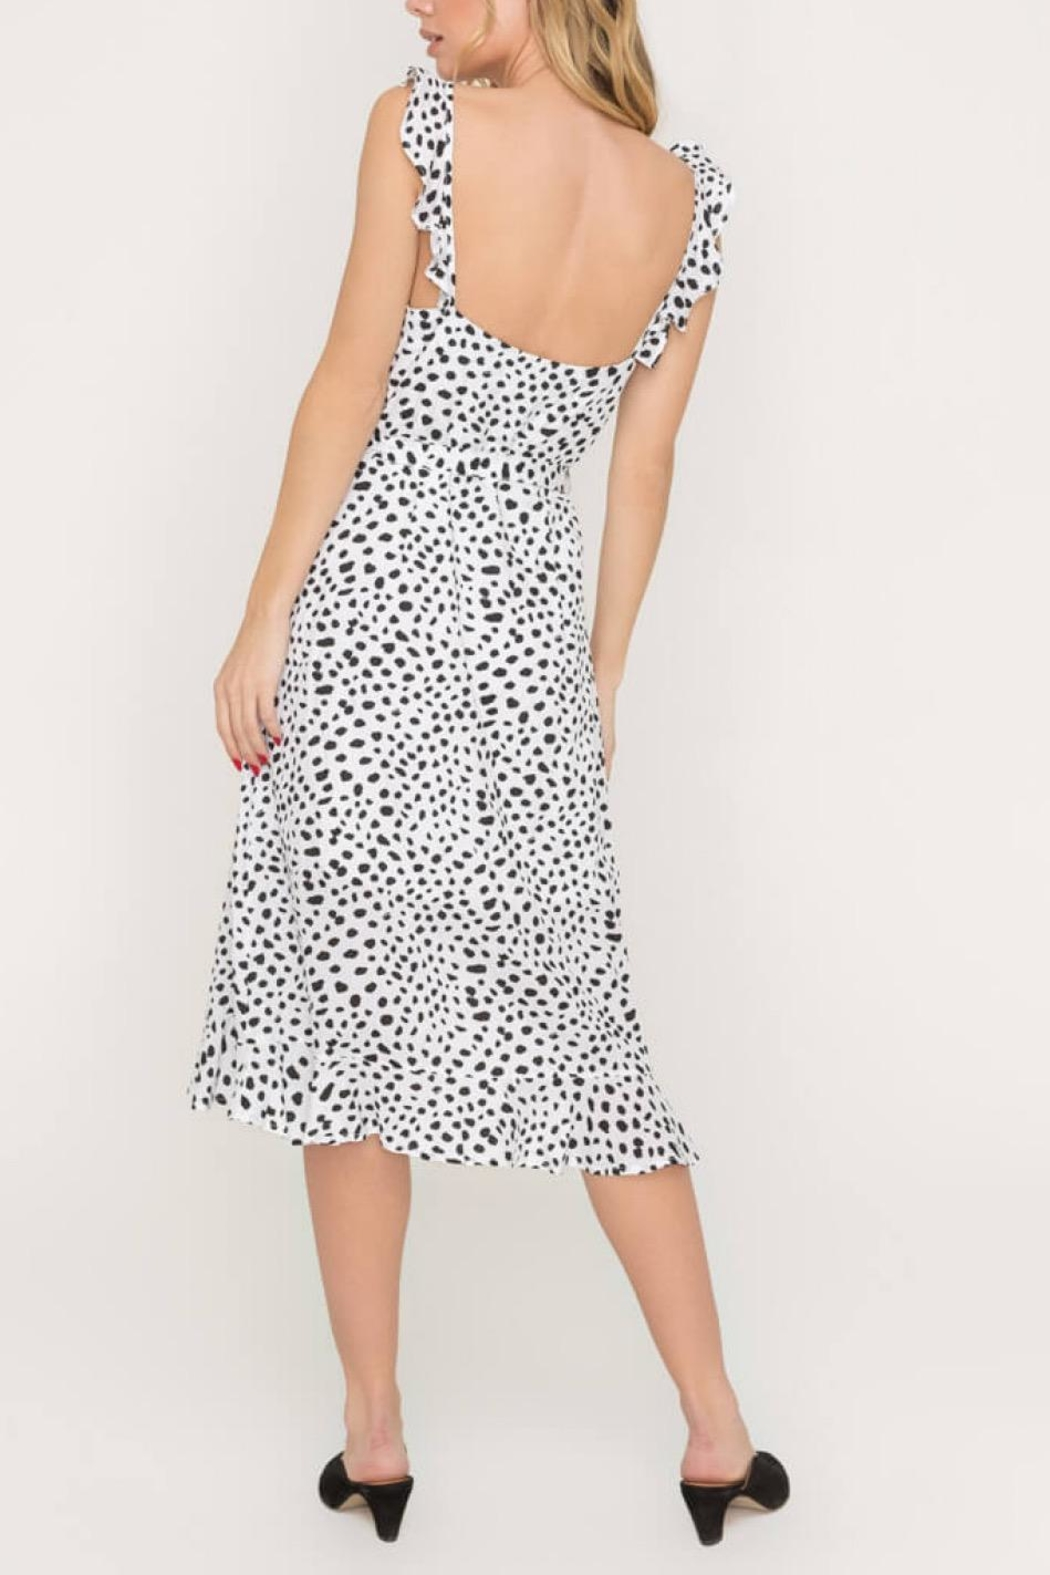 Lush Clothing  Speckled Midi Dress - Back Cropped Image